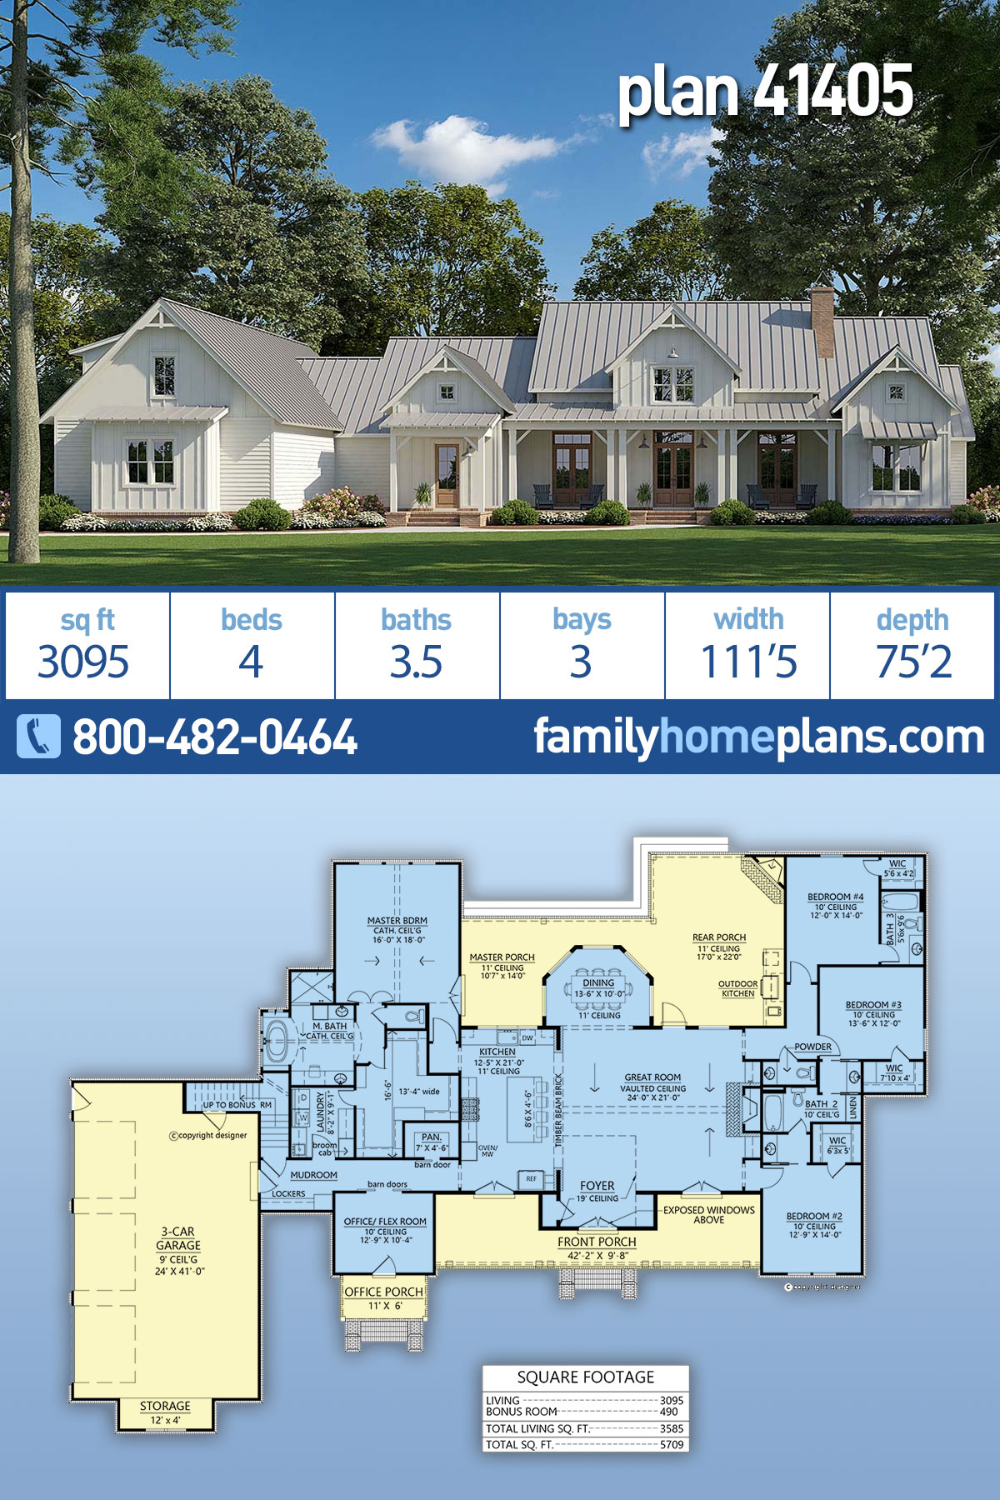 Farmhouse Style House Plan 41405 with 4 Bed, 4 Bath, 3 Car Garage